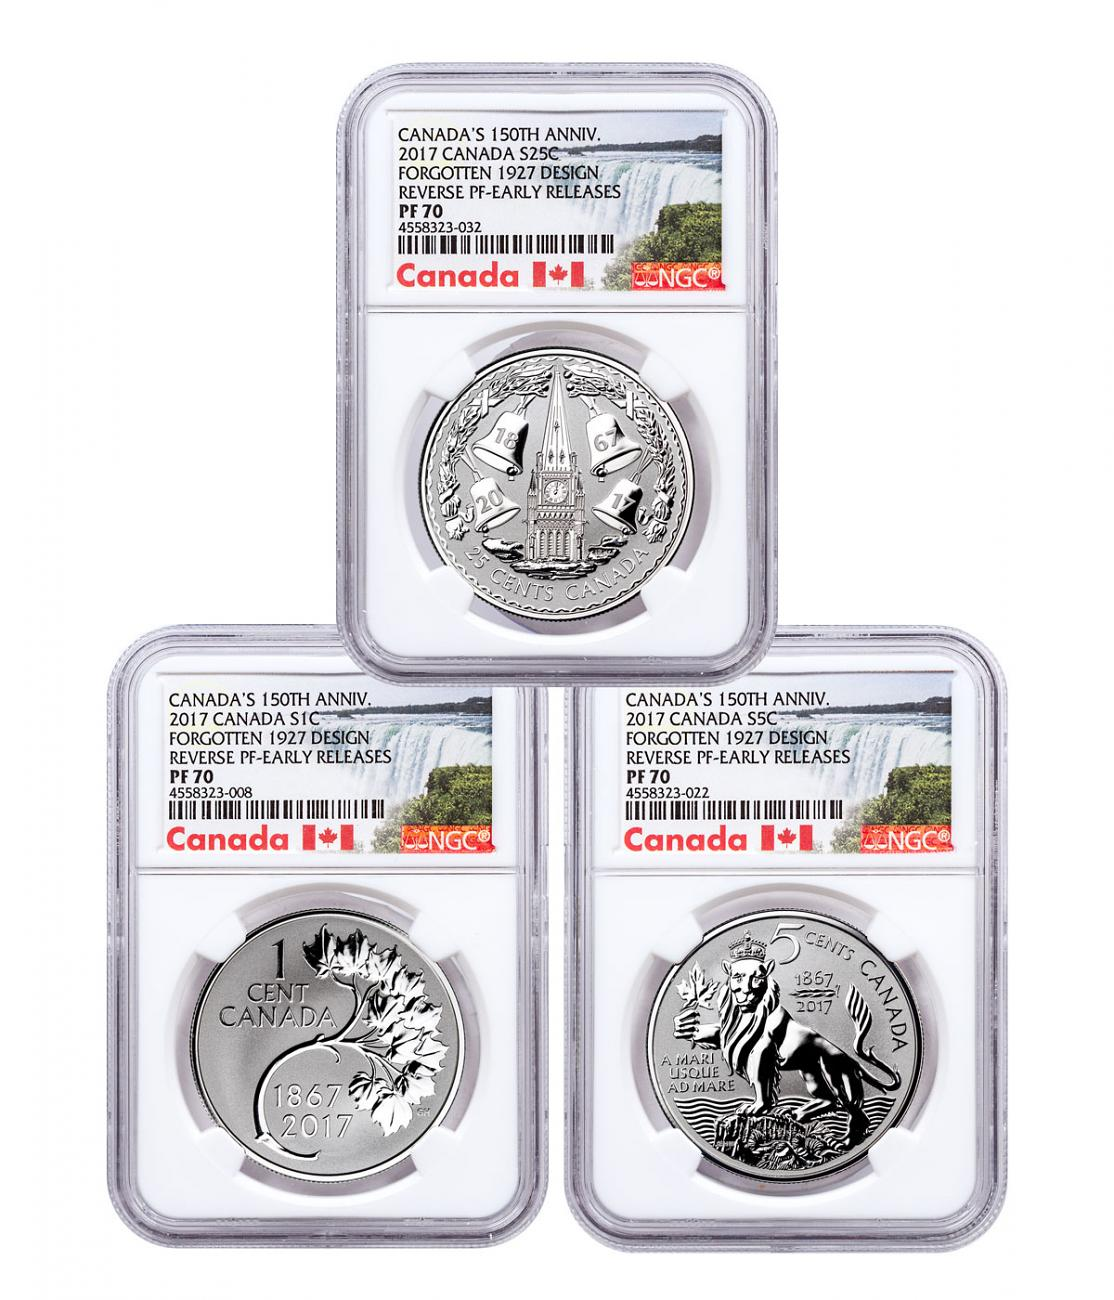 2017 Canada Coin Lore - The Forgotten 1927 Designs 3-Coin Set 1 oz Silver Reverse Proof Coin NGC PF70 ER Exclusive Canada Label